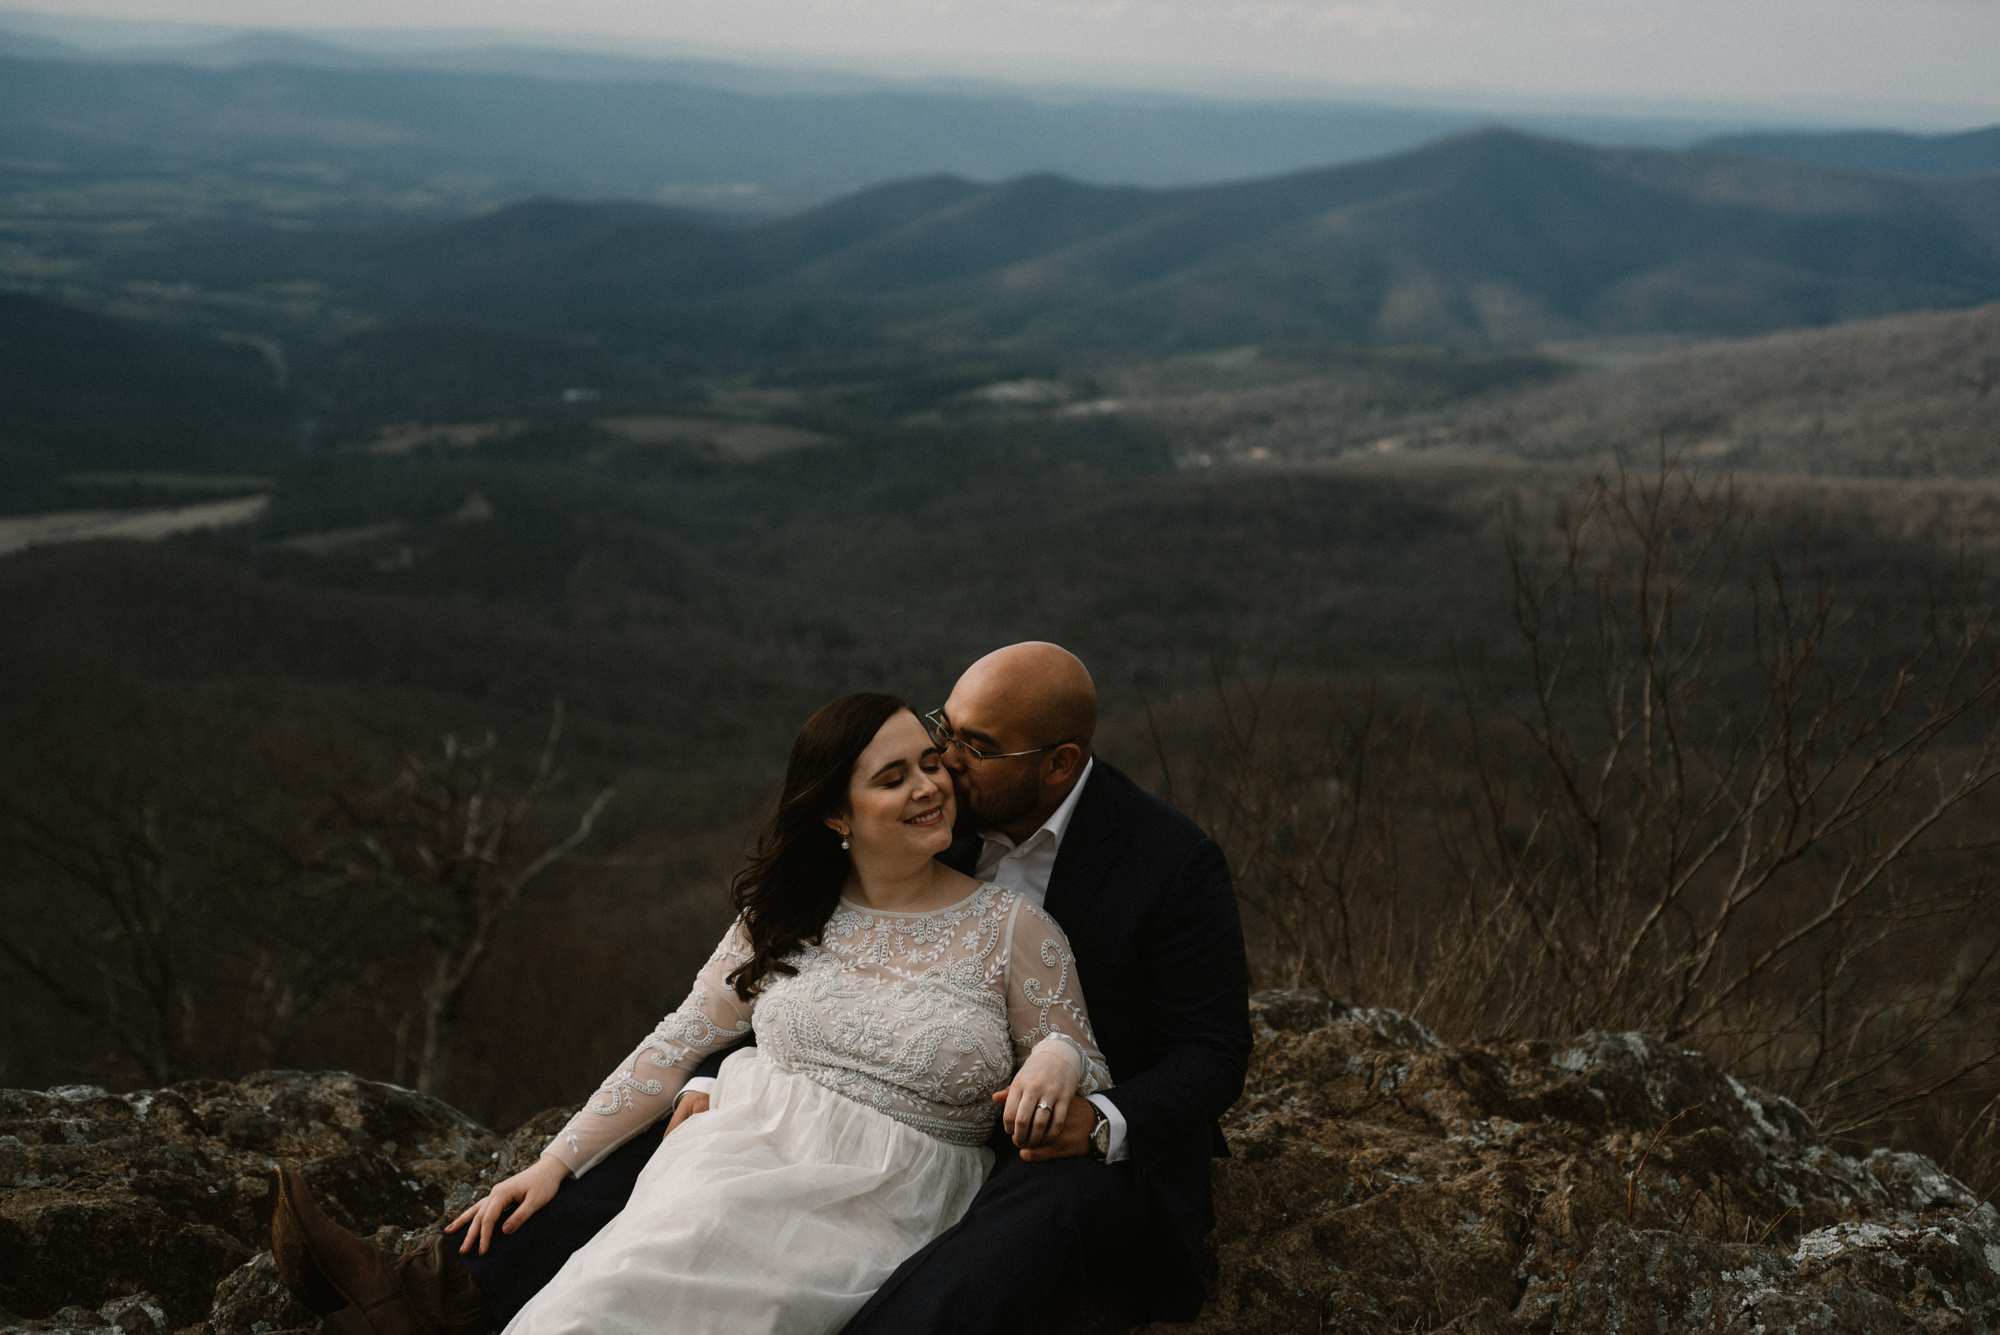 Emma and Jeddah - Intimate Luray Wedding - Shenandoah National Park Wedding - Adventure Elopement in Virginia - Shenandoah National Park Elopement_59.jpg